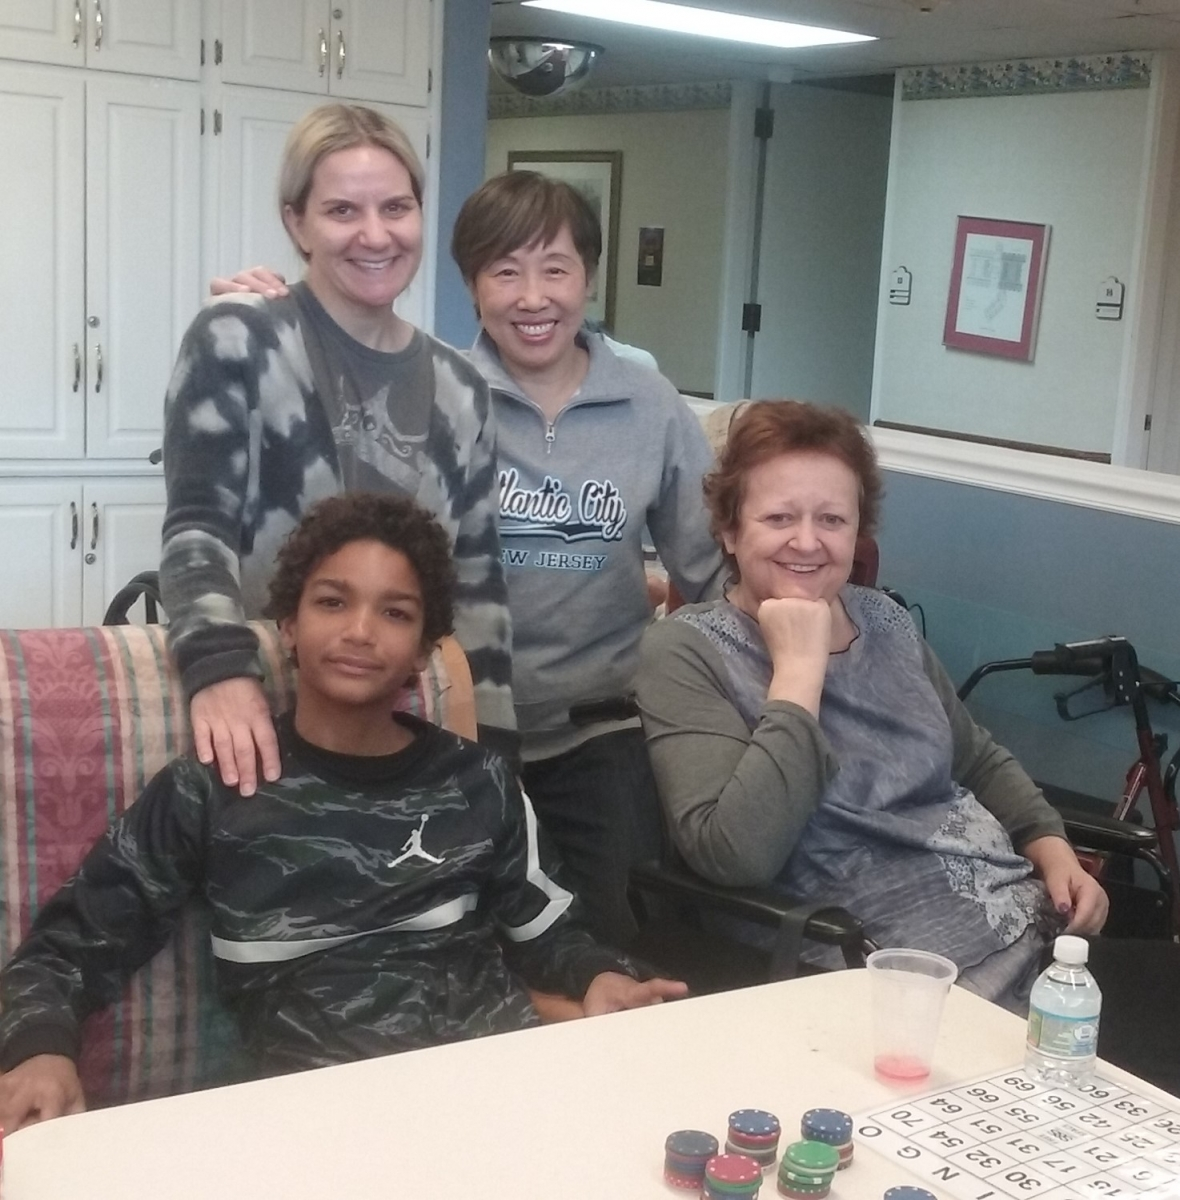 Spring-Grove-Bingo-with-New-Providence-Mayor-Al-Morgan-and-Diversity-Committee-3